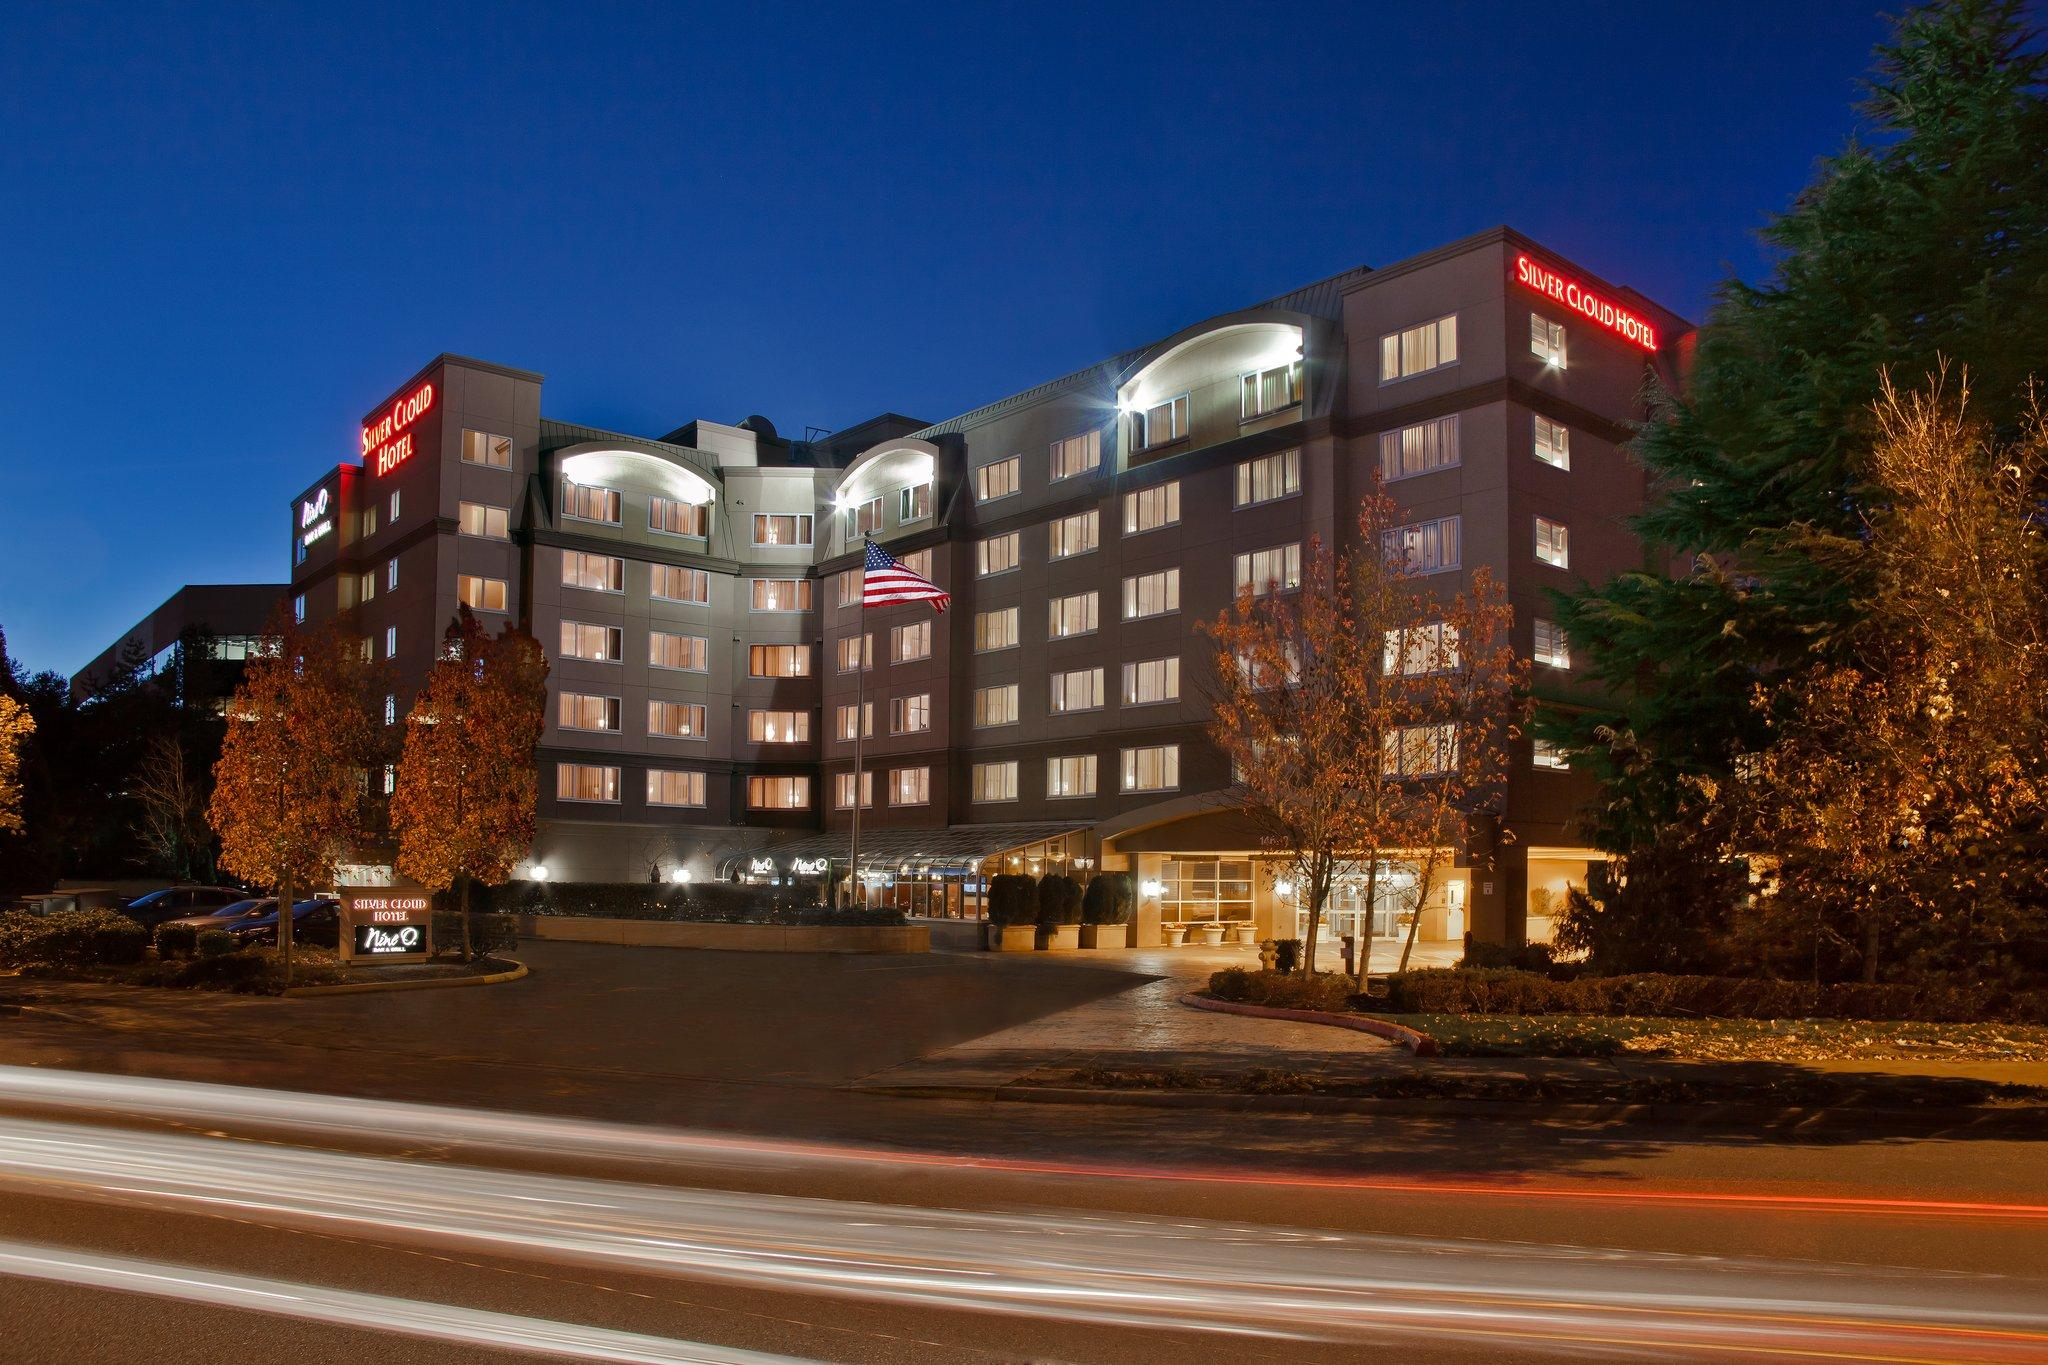 Silver Cloud Hotel Bellevue - Eastgate